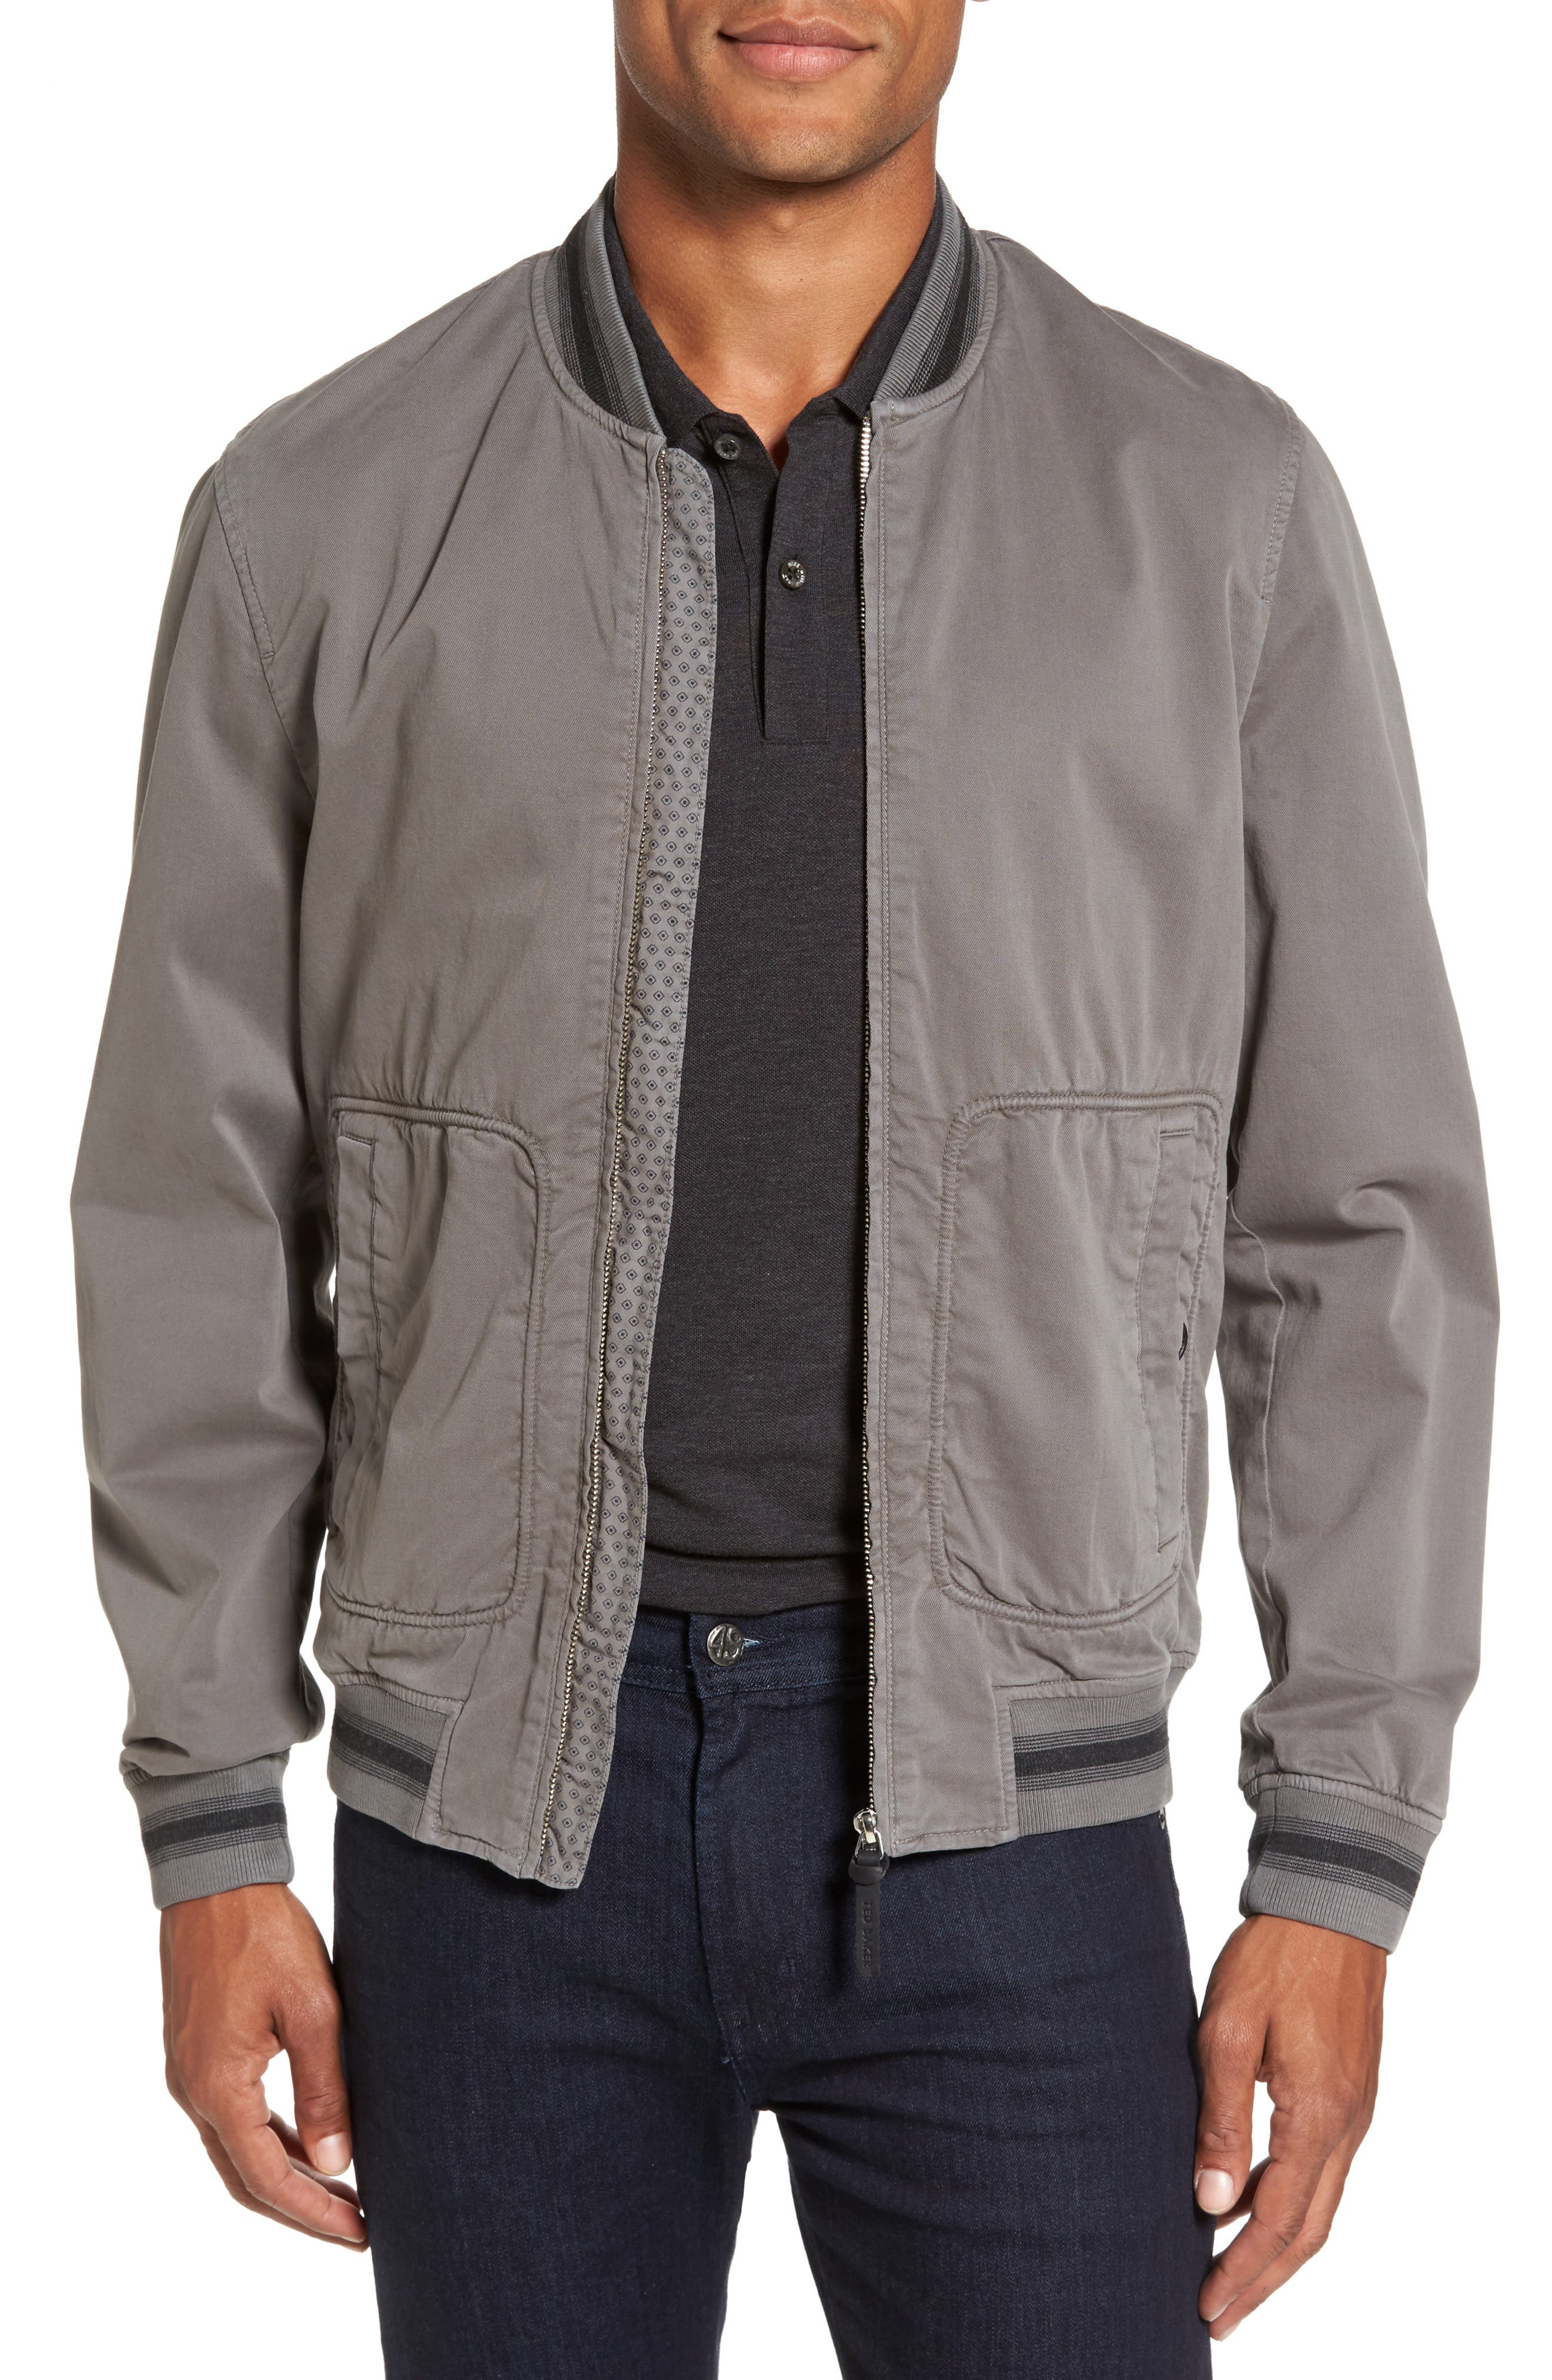 Robot Laundered Bomber Jacket,                         Main,                         color, 030